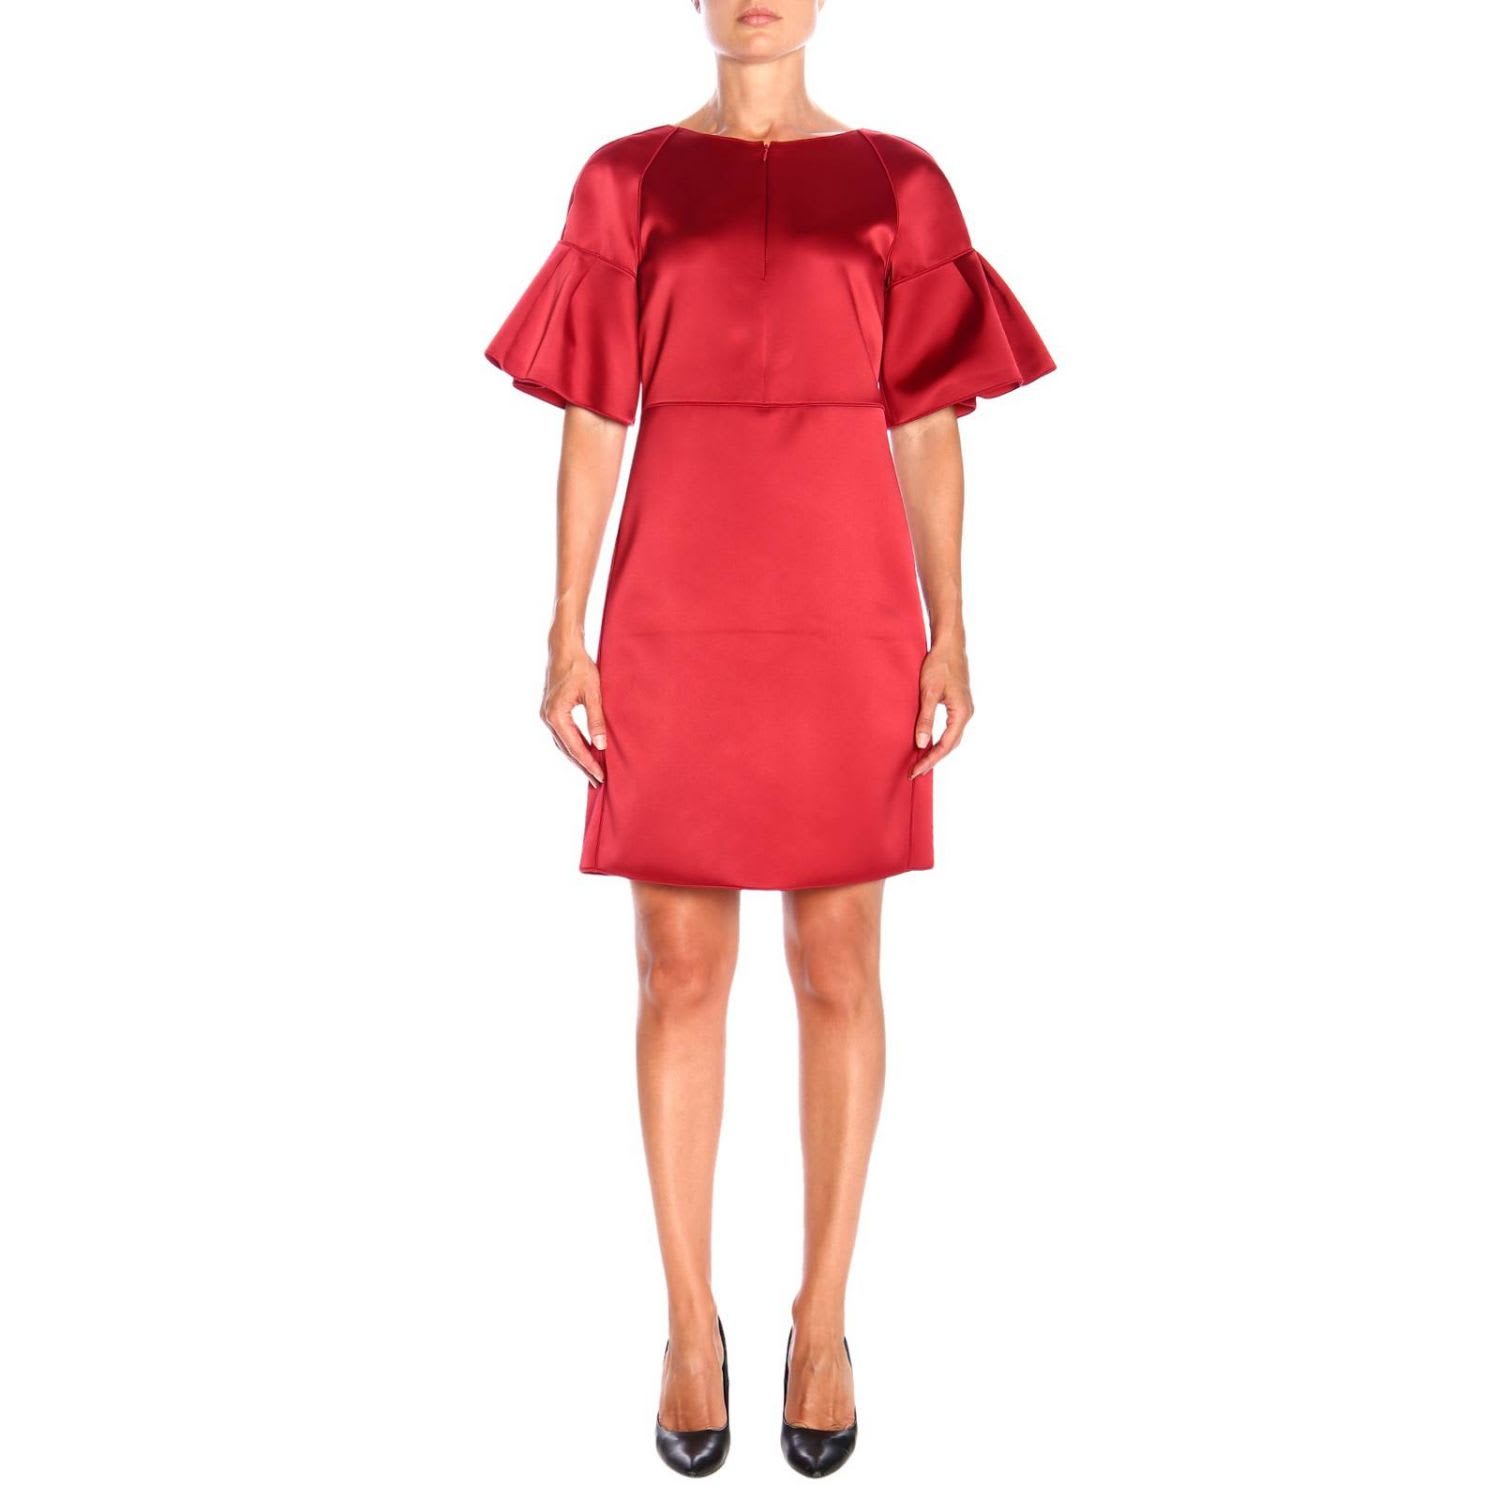 Photo of  Emporio Armani Dress Emporio Armani Dress In Satin With Ruffled Sleeves- shop Emporio Armani  online sales